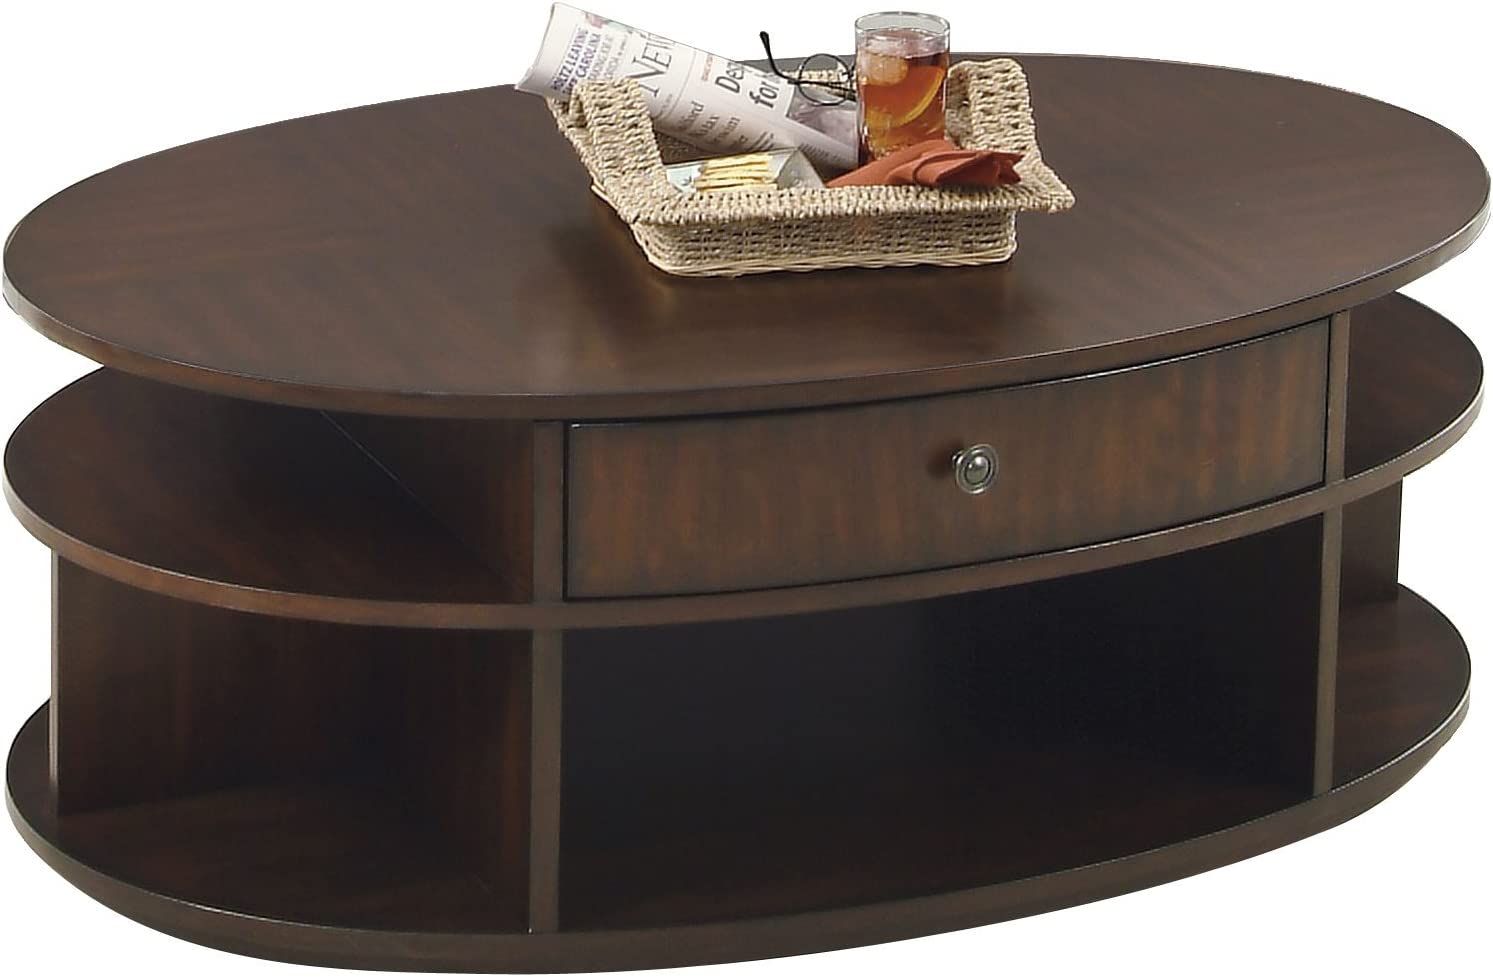 Progressive Furniture Metropolitan Oval Castered Lift-Top Cocktail Coffee Table